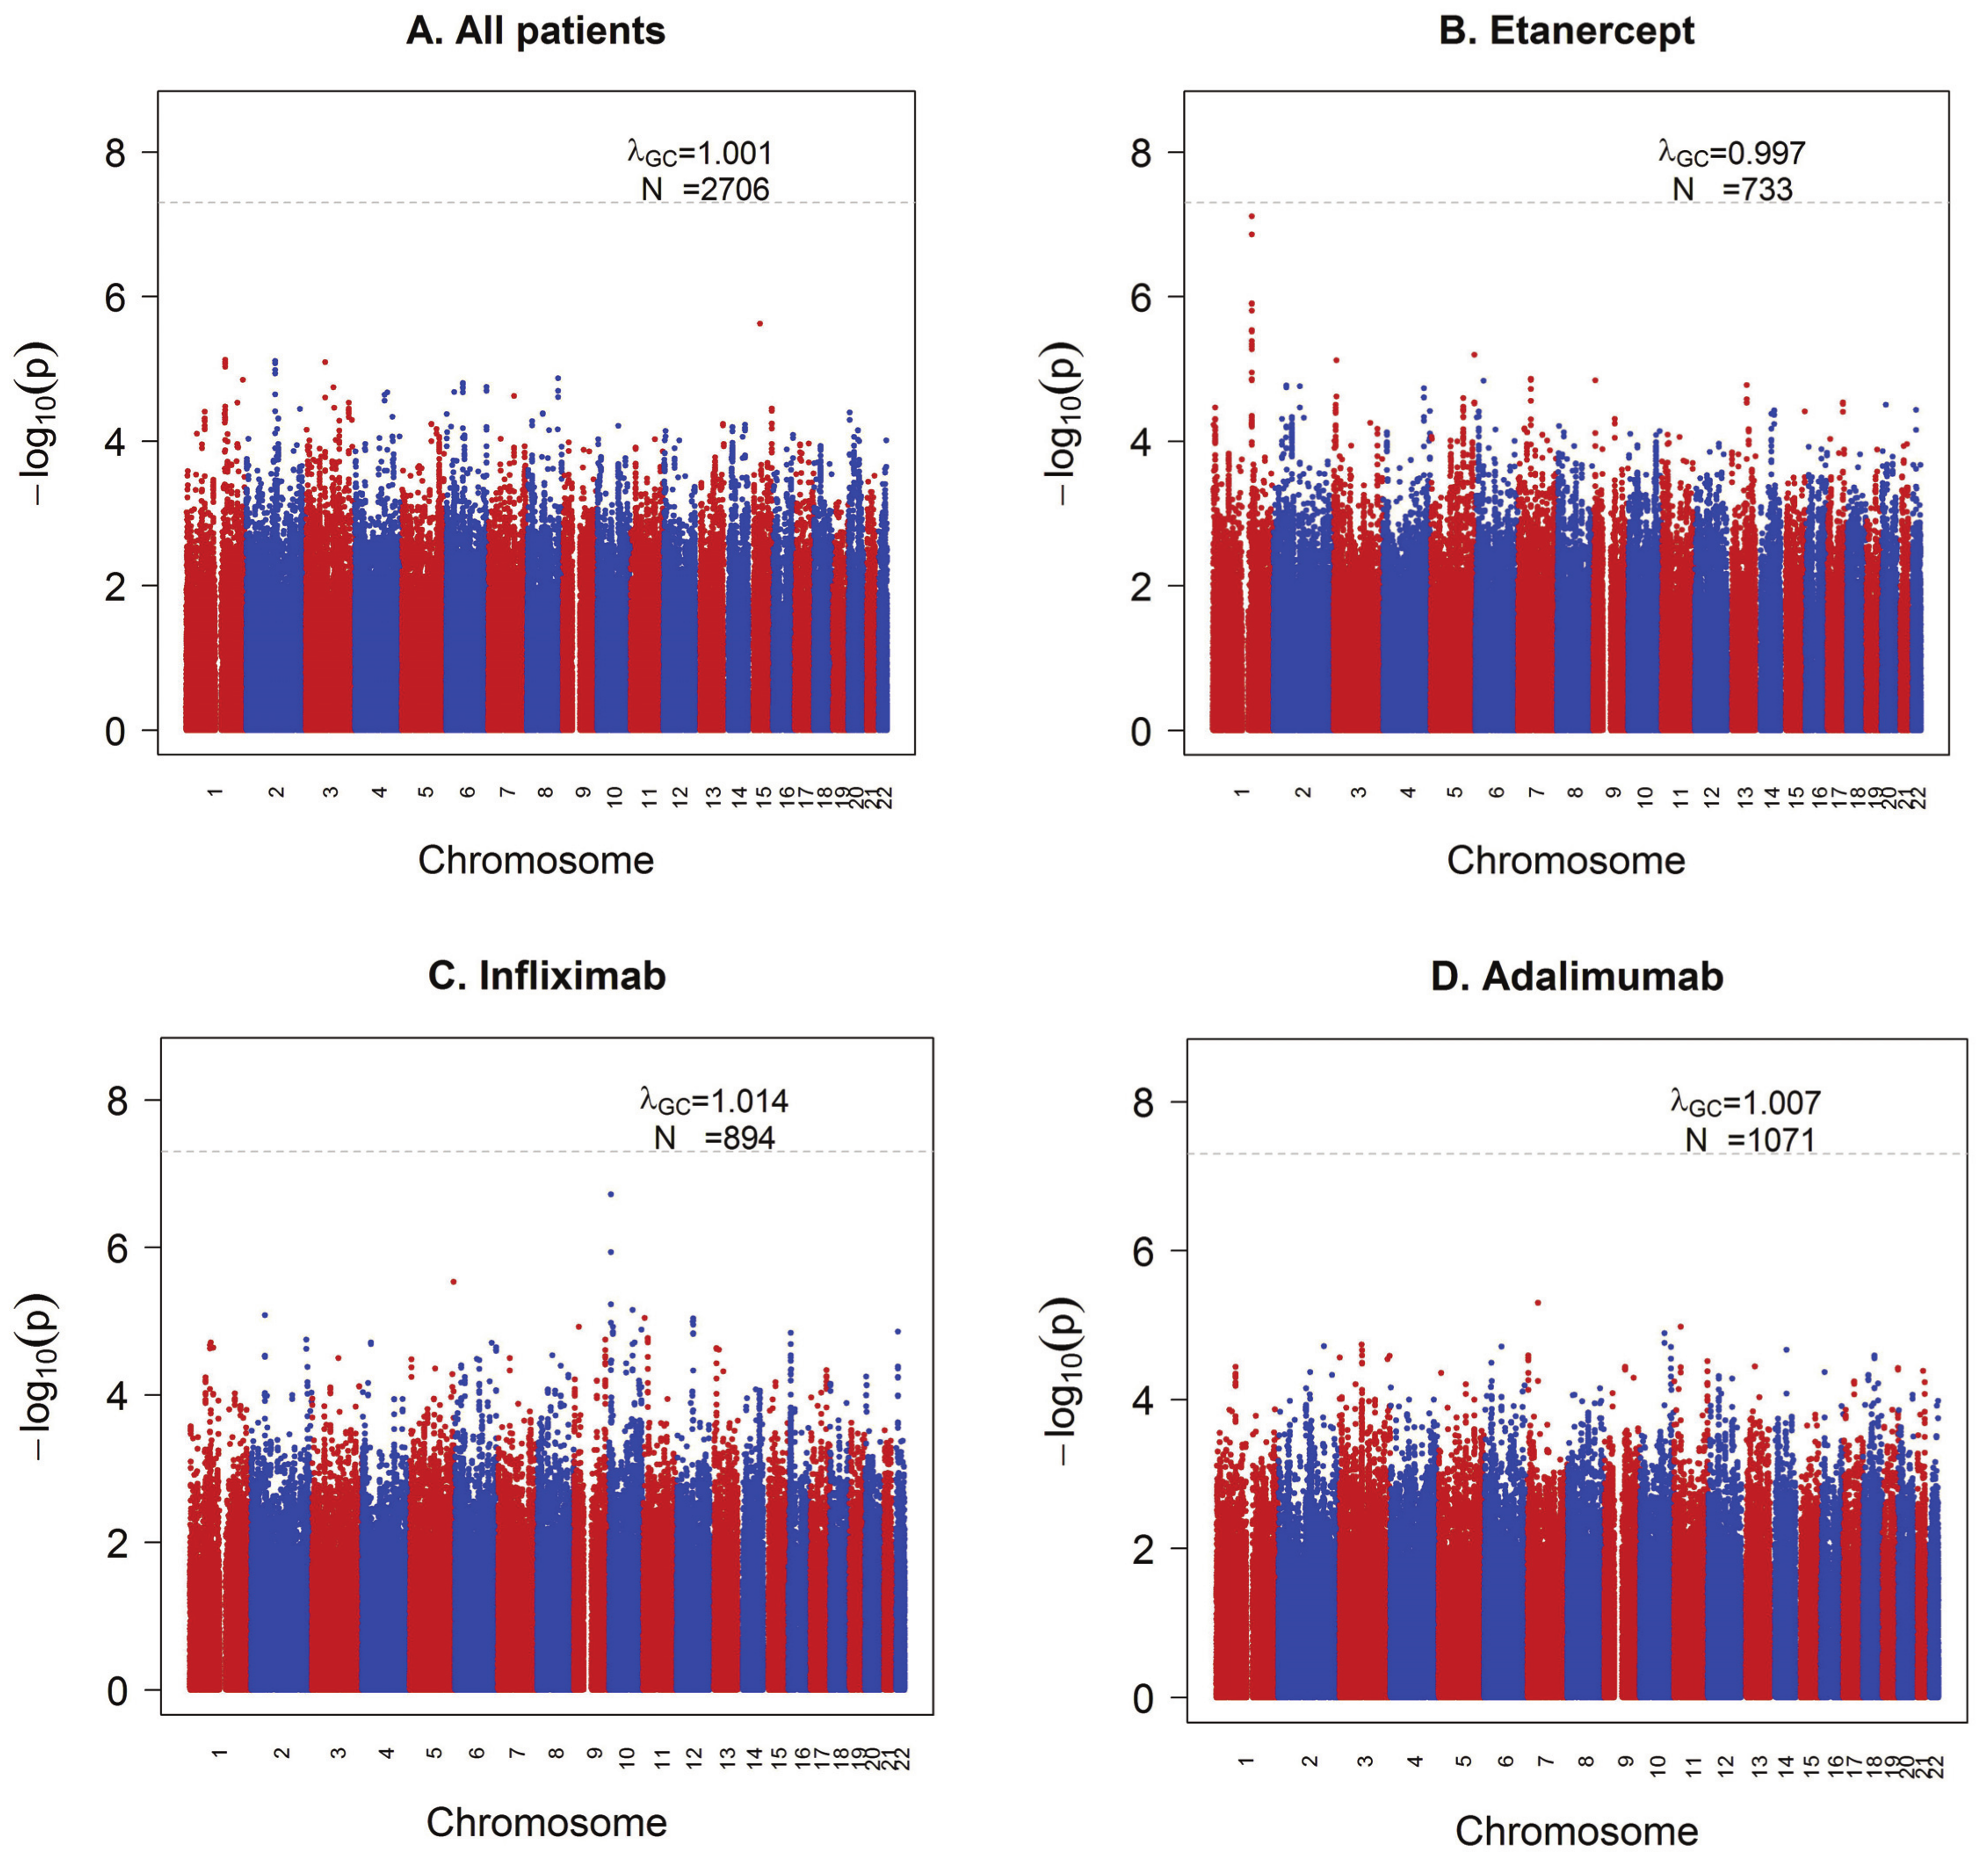 GWAS results for the ΔDAS phenotype.